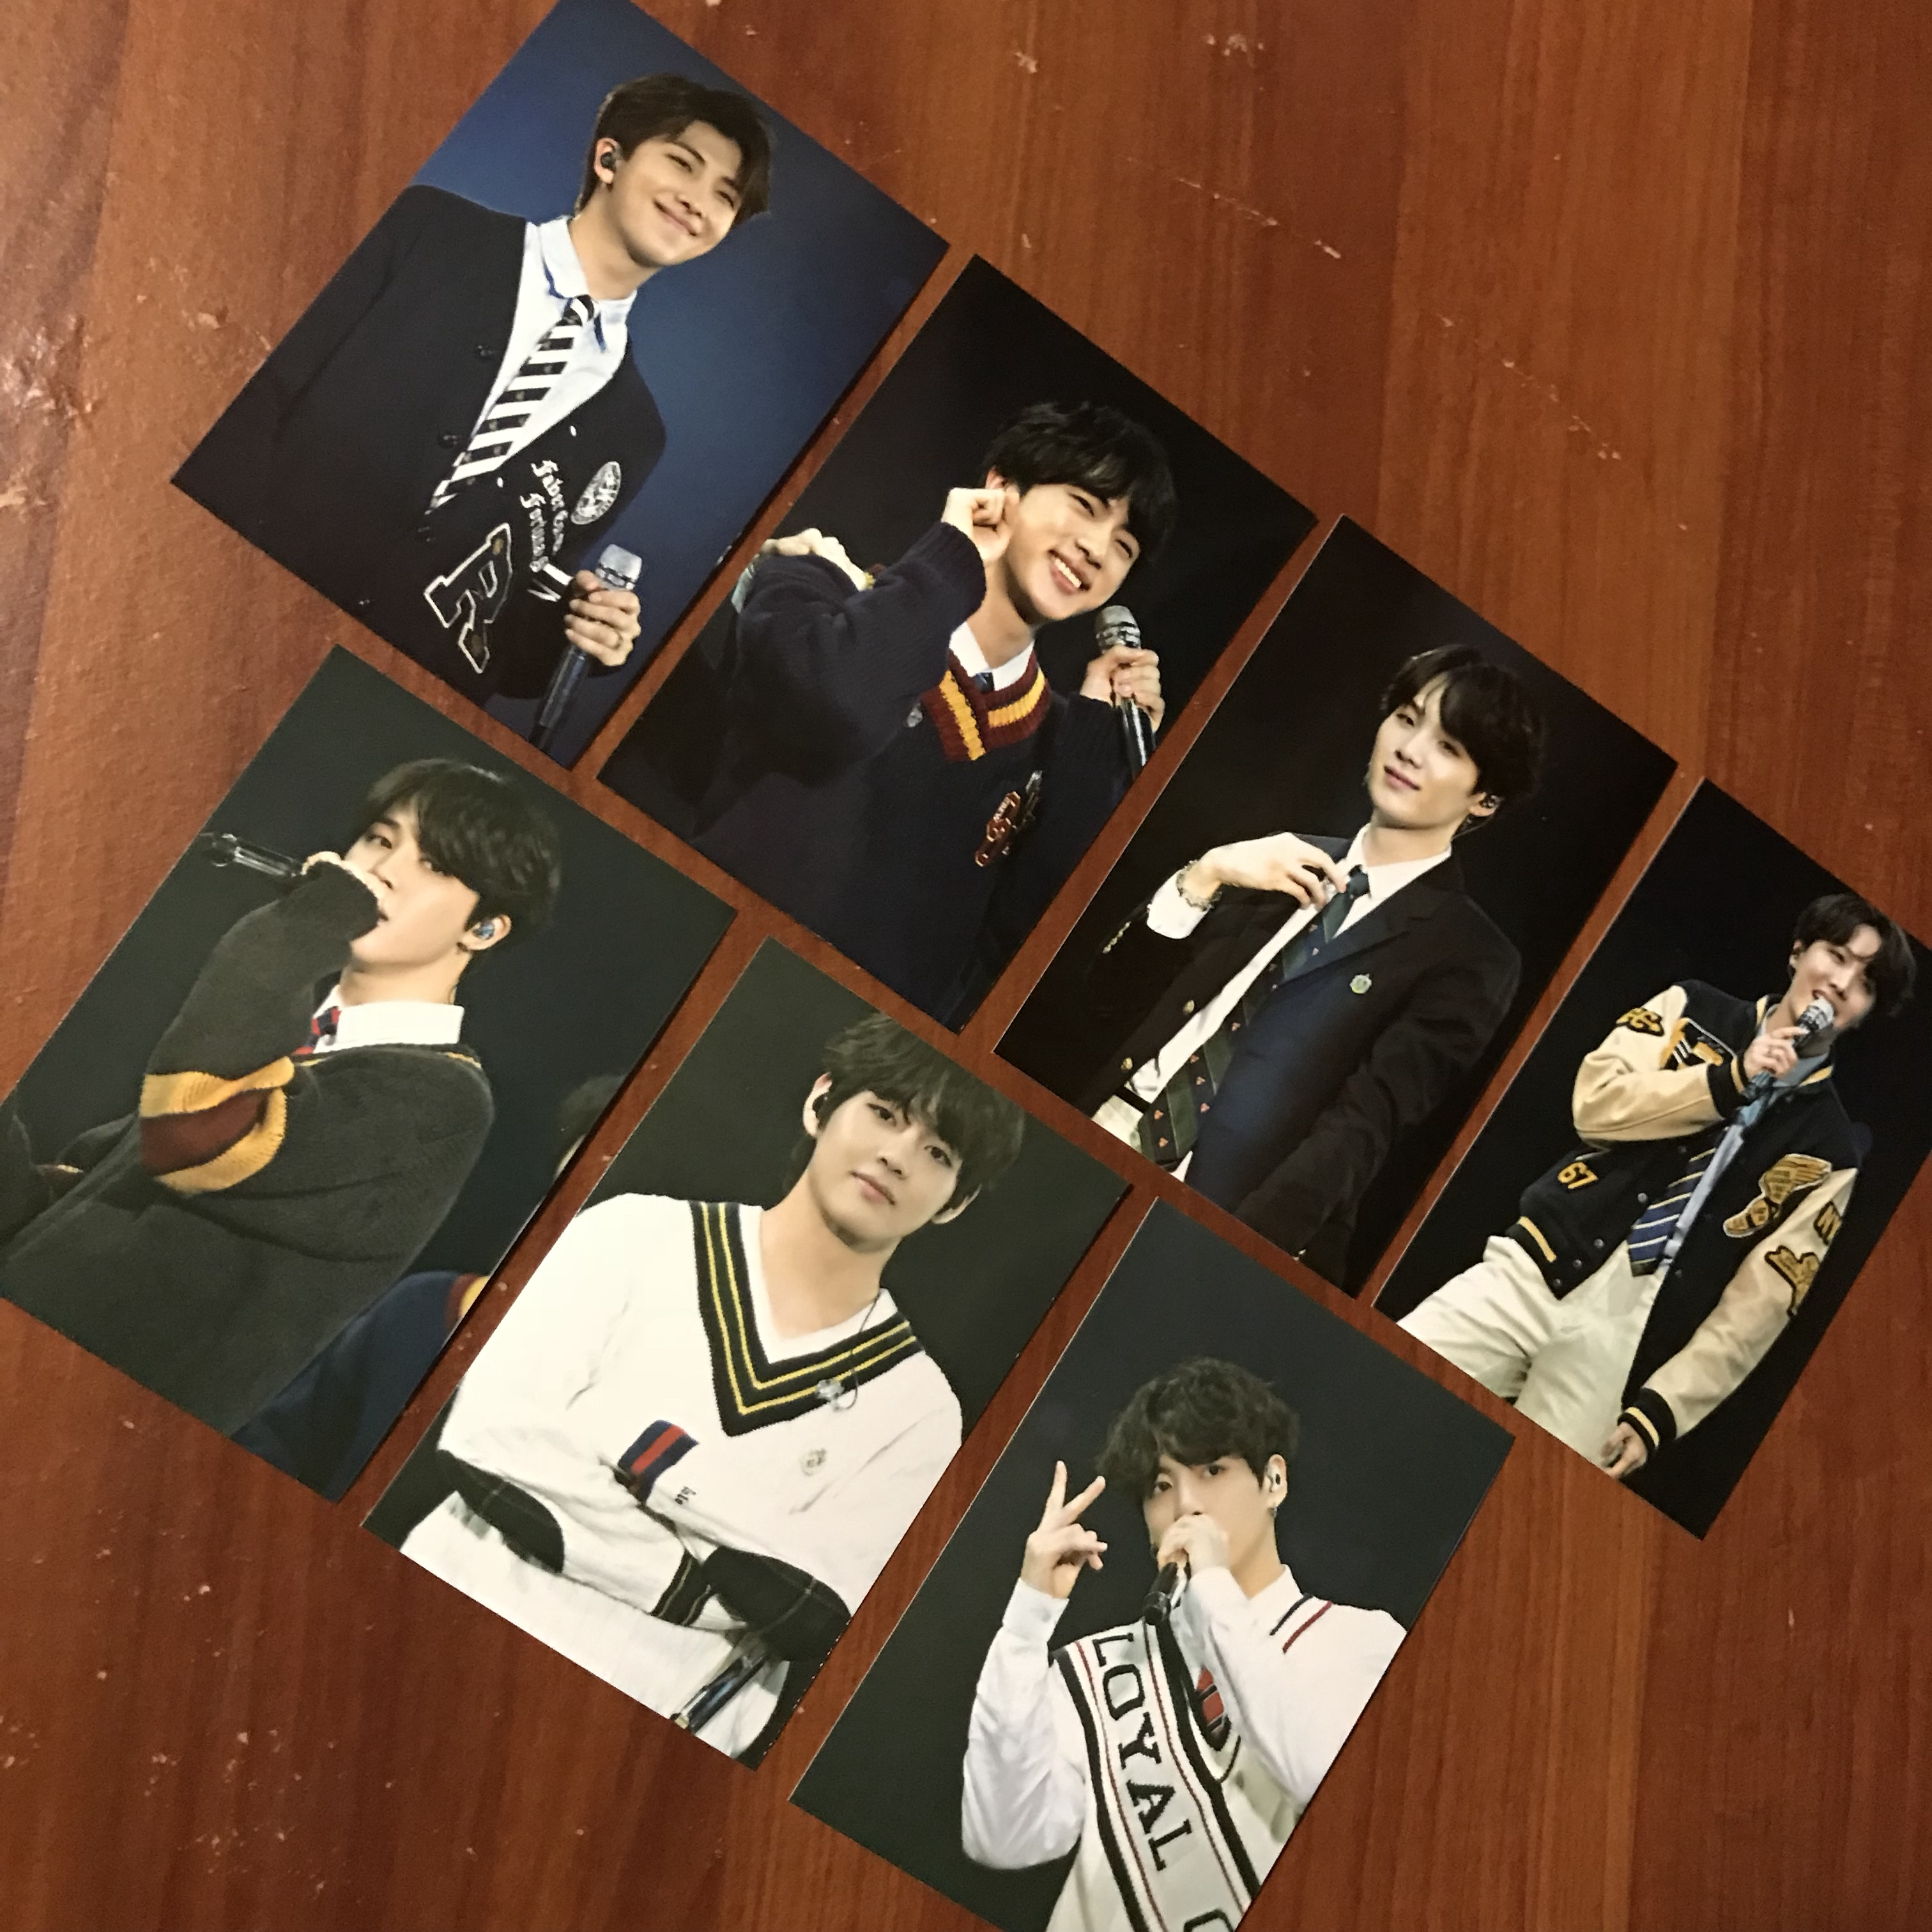 a set of bts photocards - images from the japan 4th    - Depop